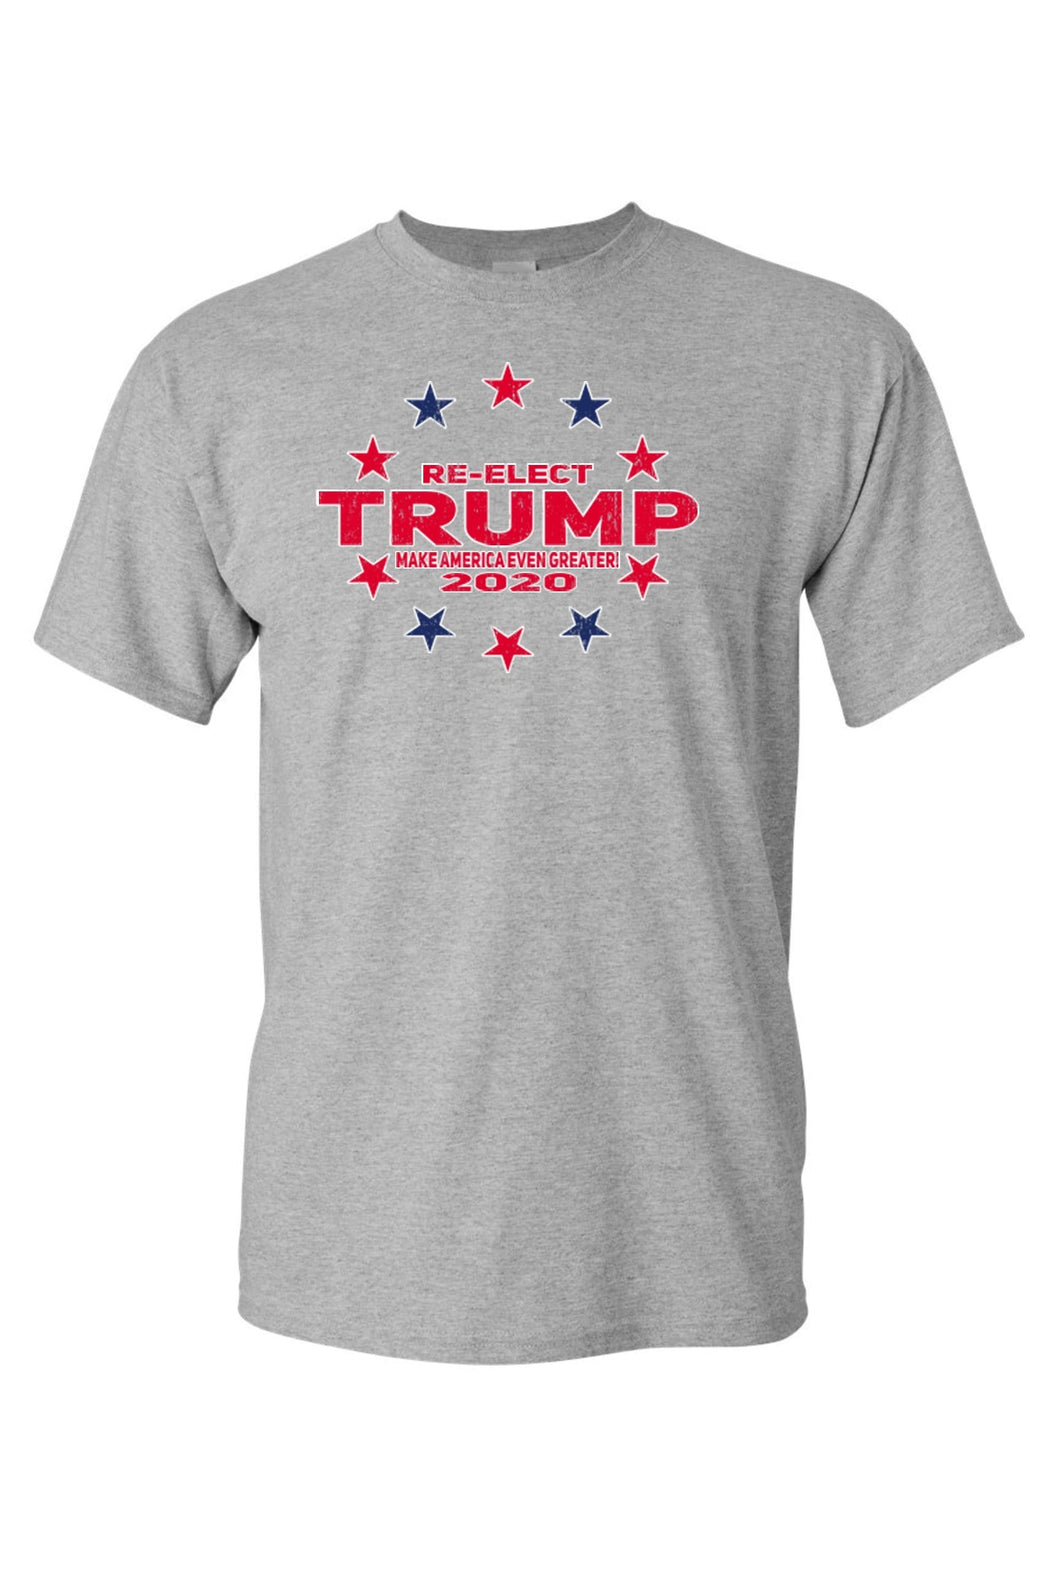 American Patriots Apparel FRONT / Grey / 5XL Unisex Trump Stars & Stripes Short Sleeve Shirt